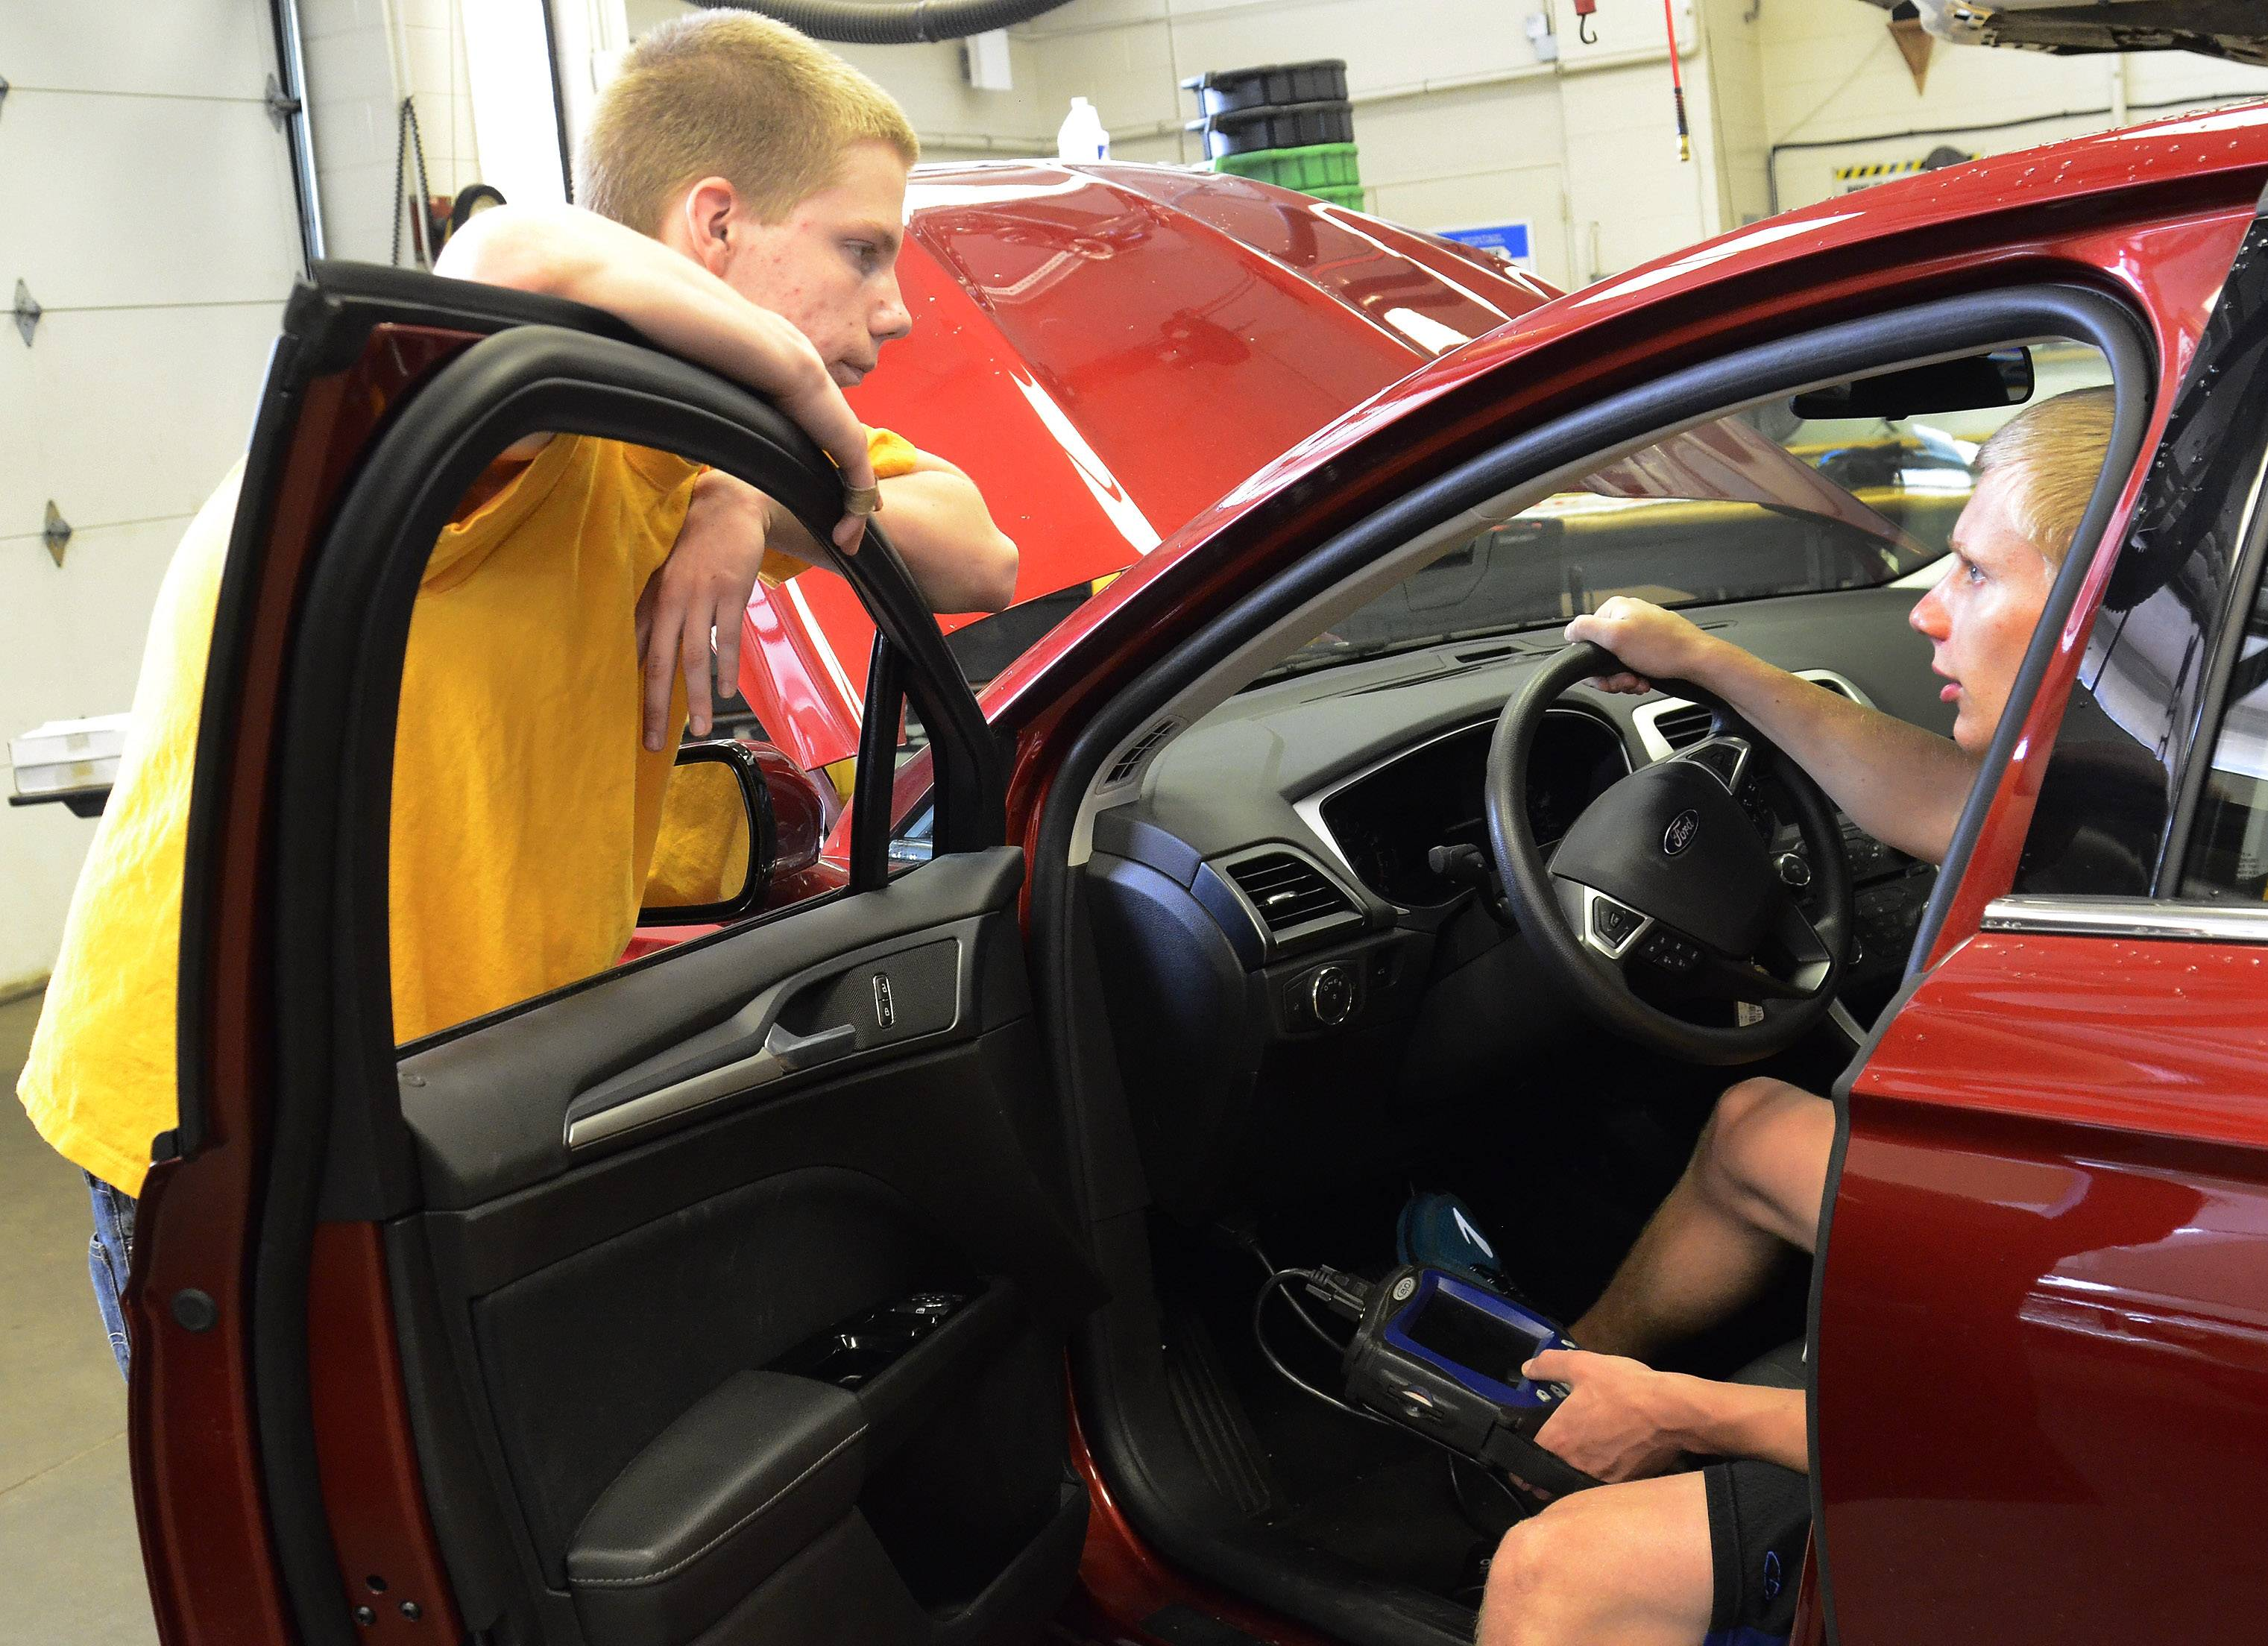 Frank Kranz, left, and Tom Mayer will compete next week for the national championship in the Ford/AAA Student Auto Skills competition. The recent Fremd High School graduates will compete against 49 other teams from across the country in a competition that will challenge them to repair an intentionally bugged car in 90 minutes or less.